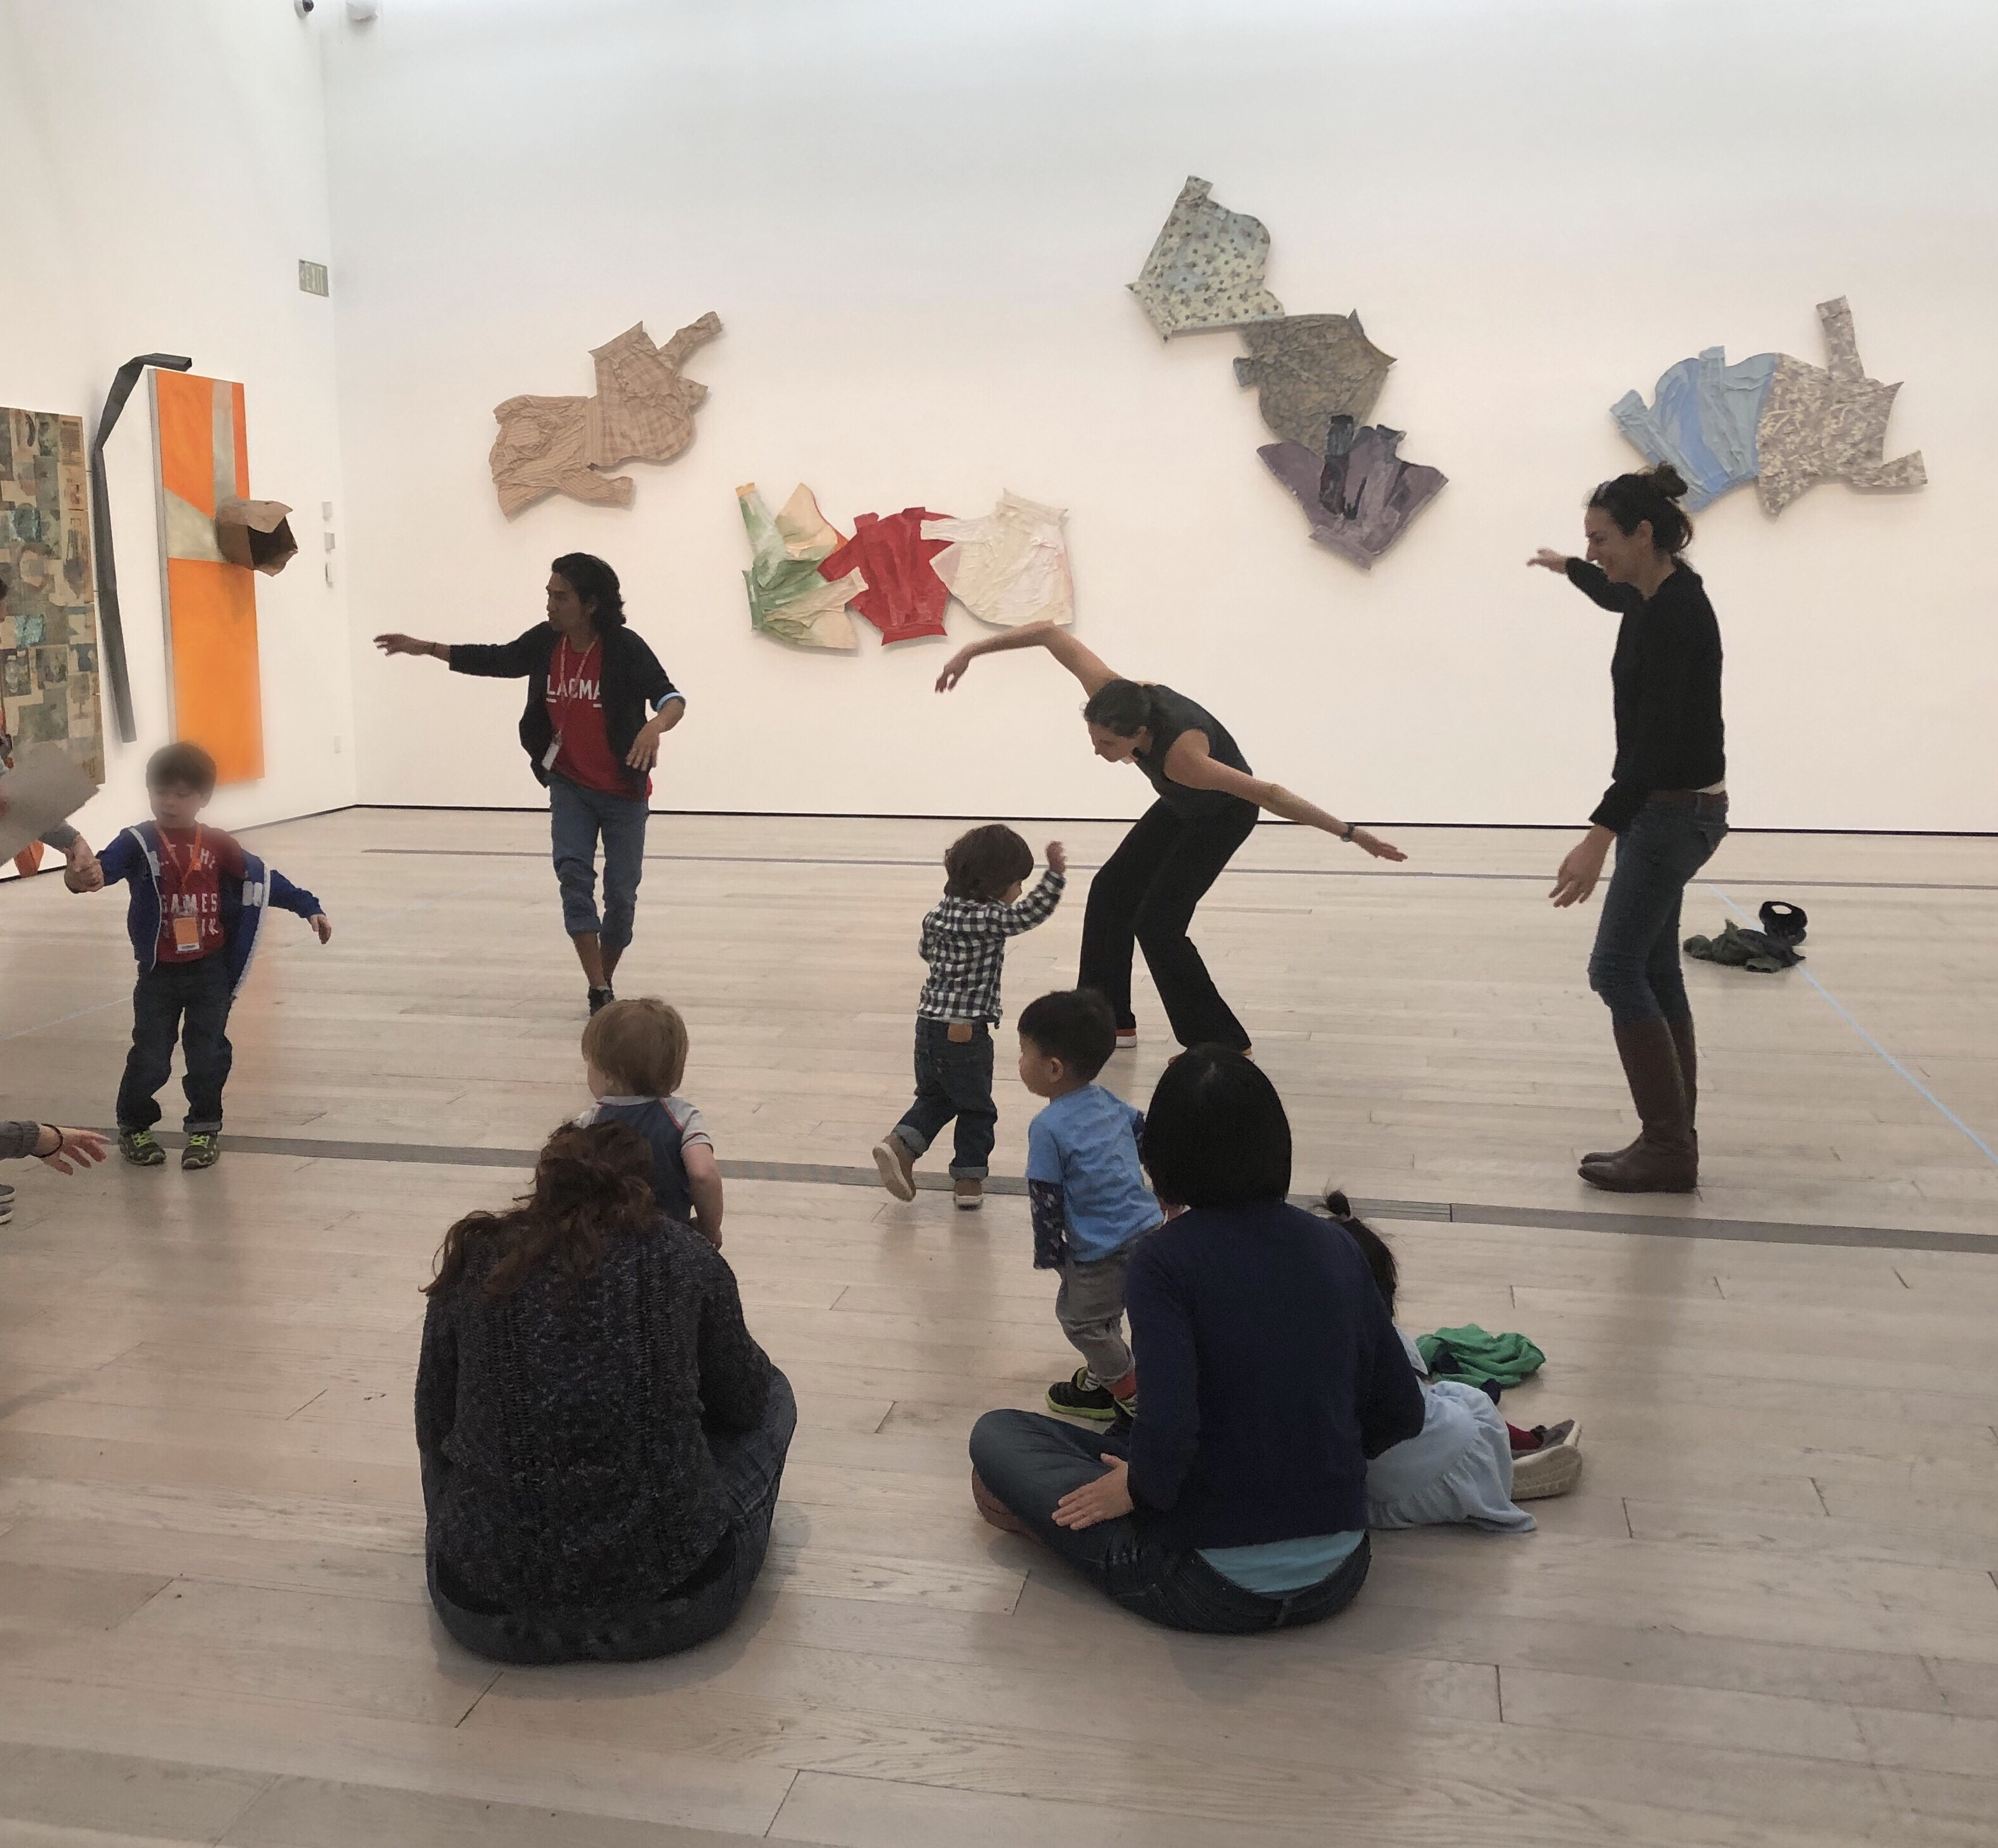 Andell Family Sundays participants dancing in front of Robert Rauschenberg's The 1/4 Mile or 2 Furlong Piece.